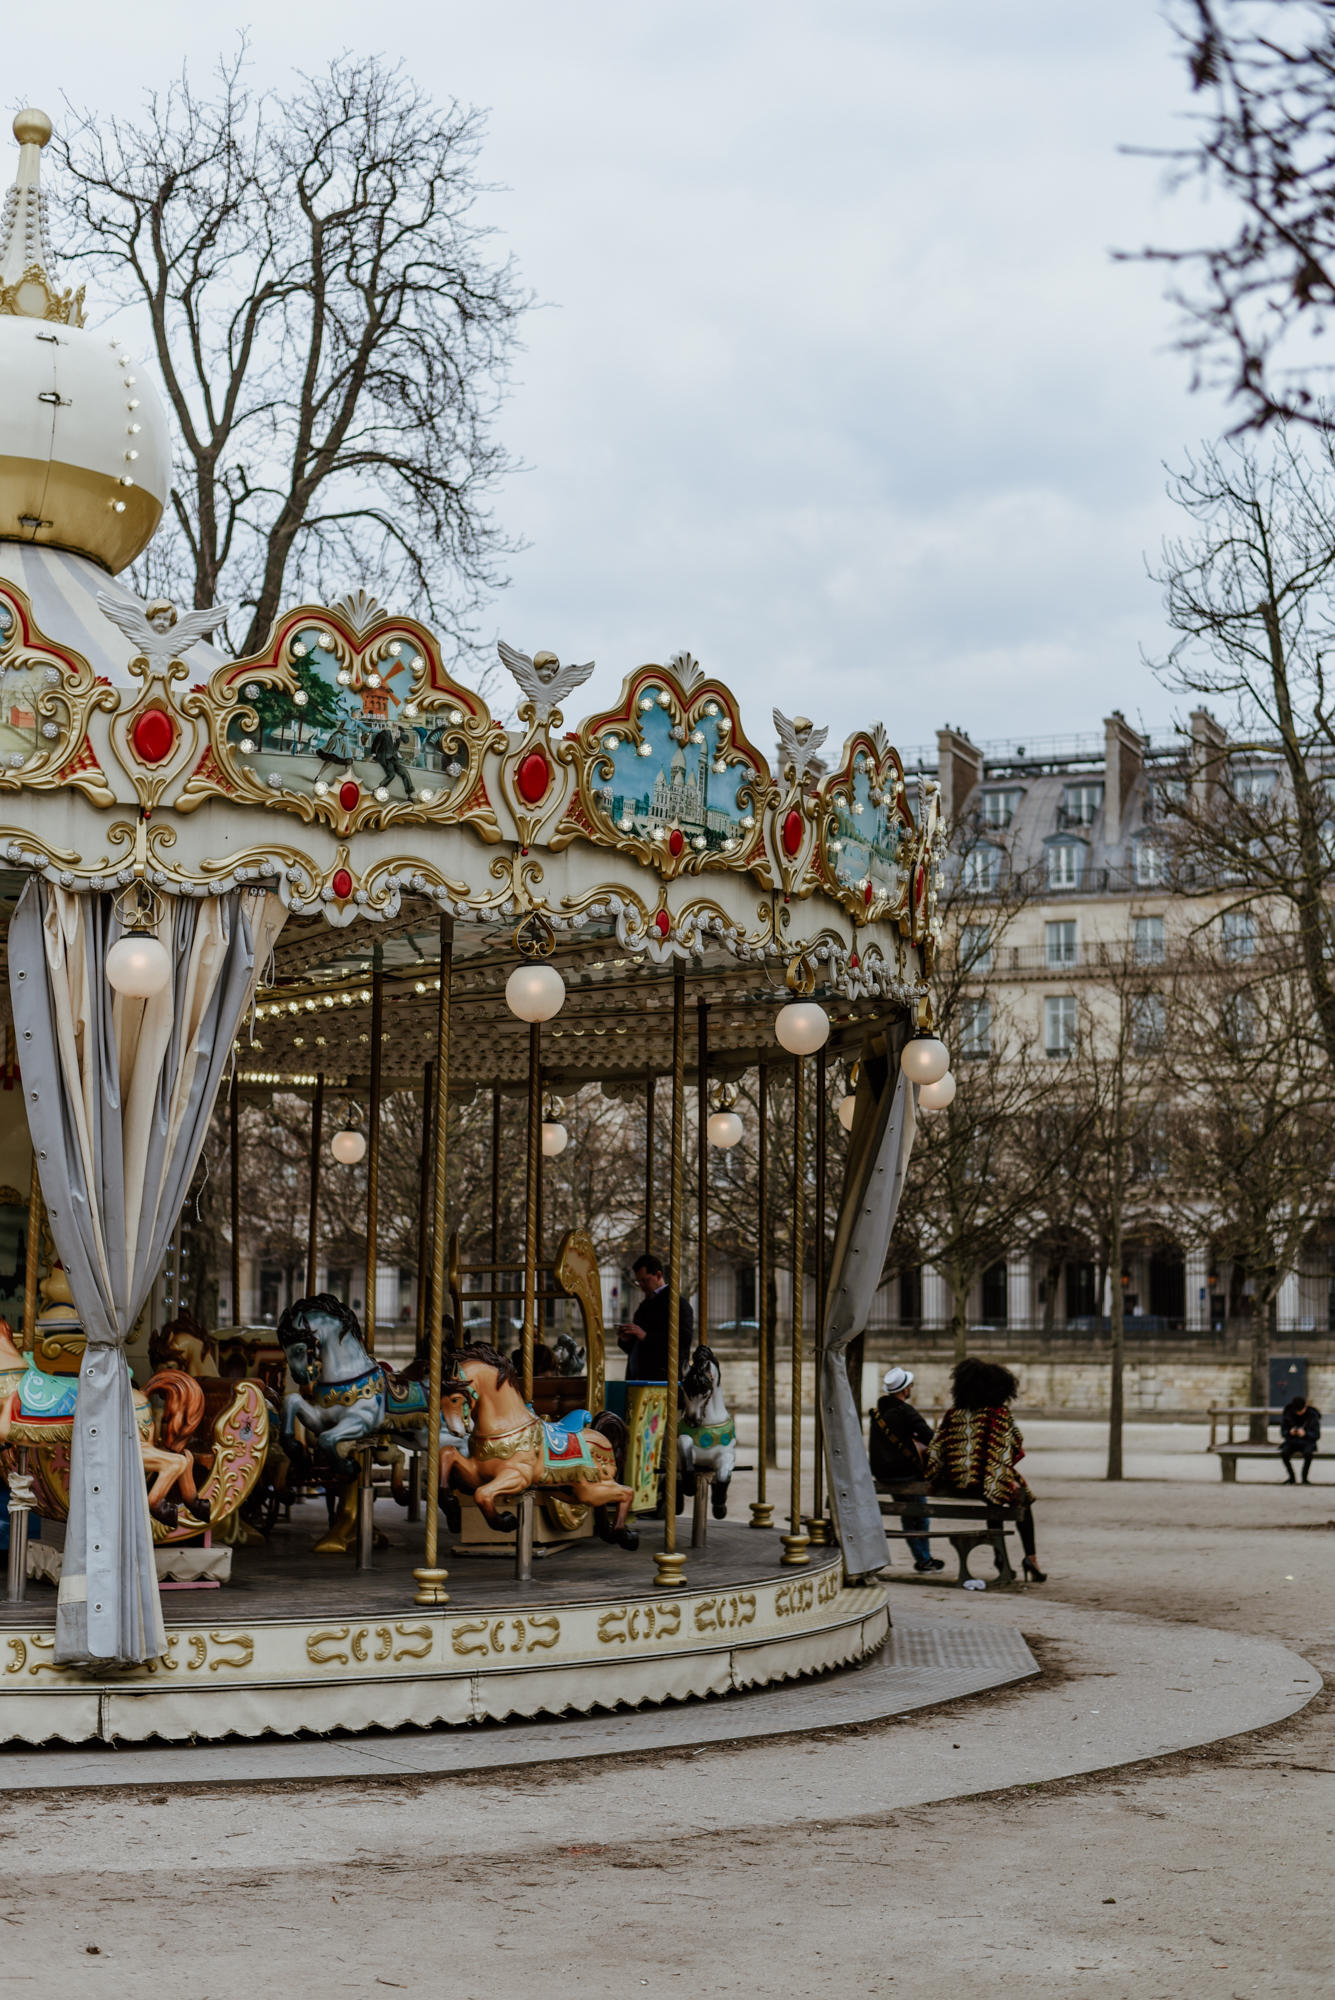 old carousel in Jardin des tuileries